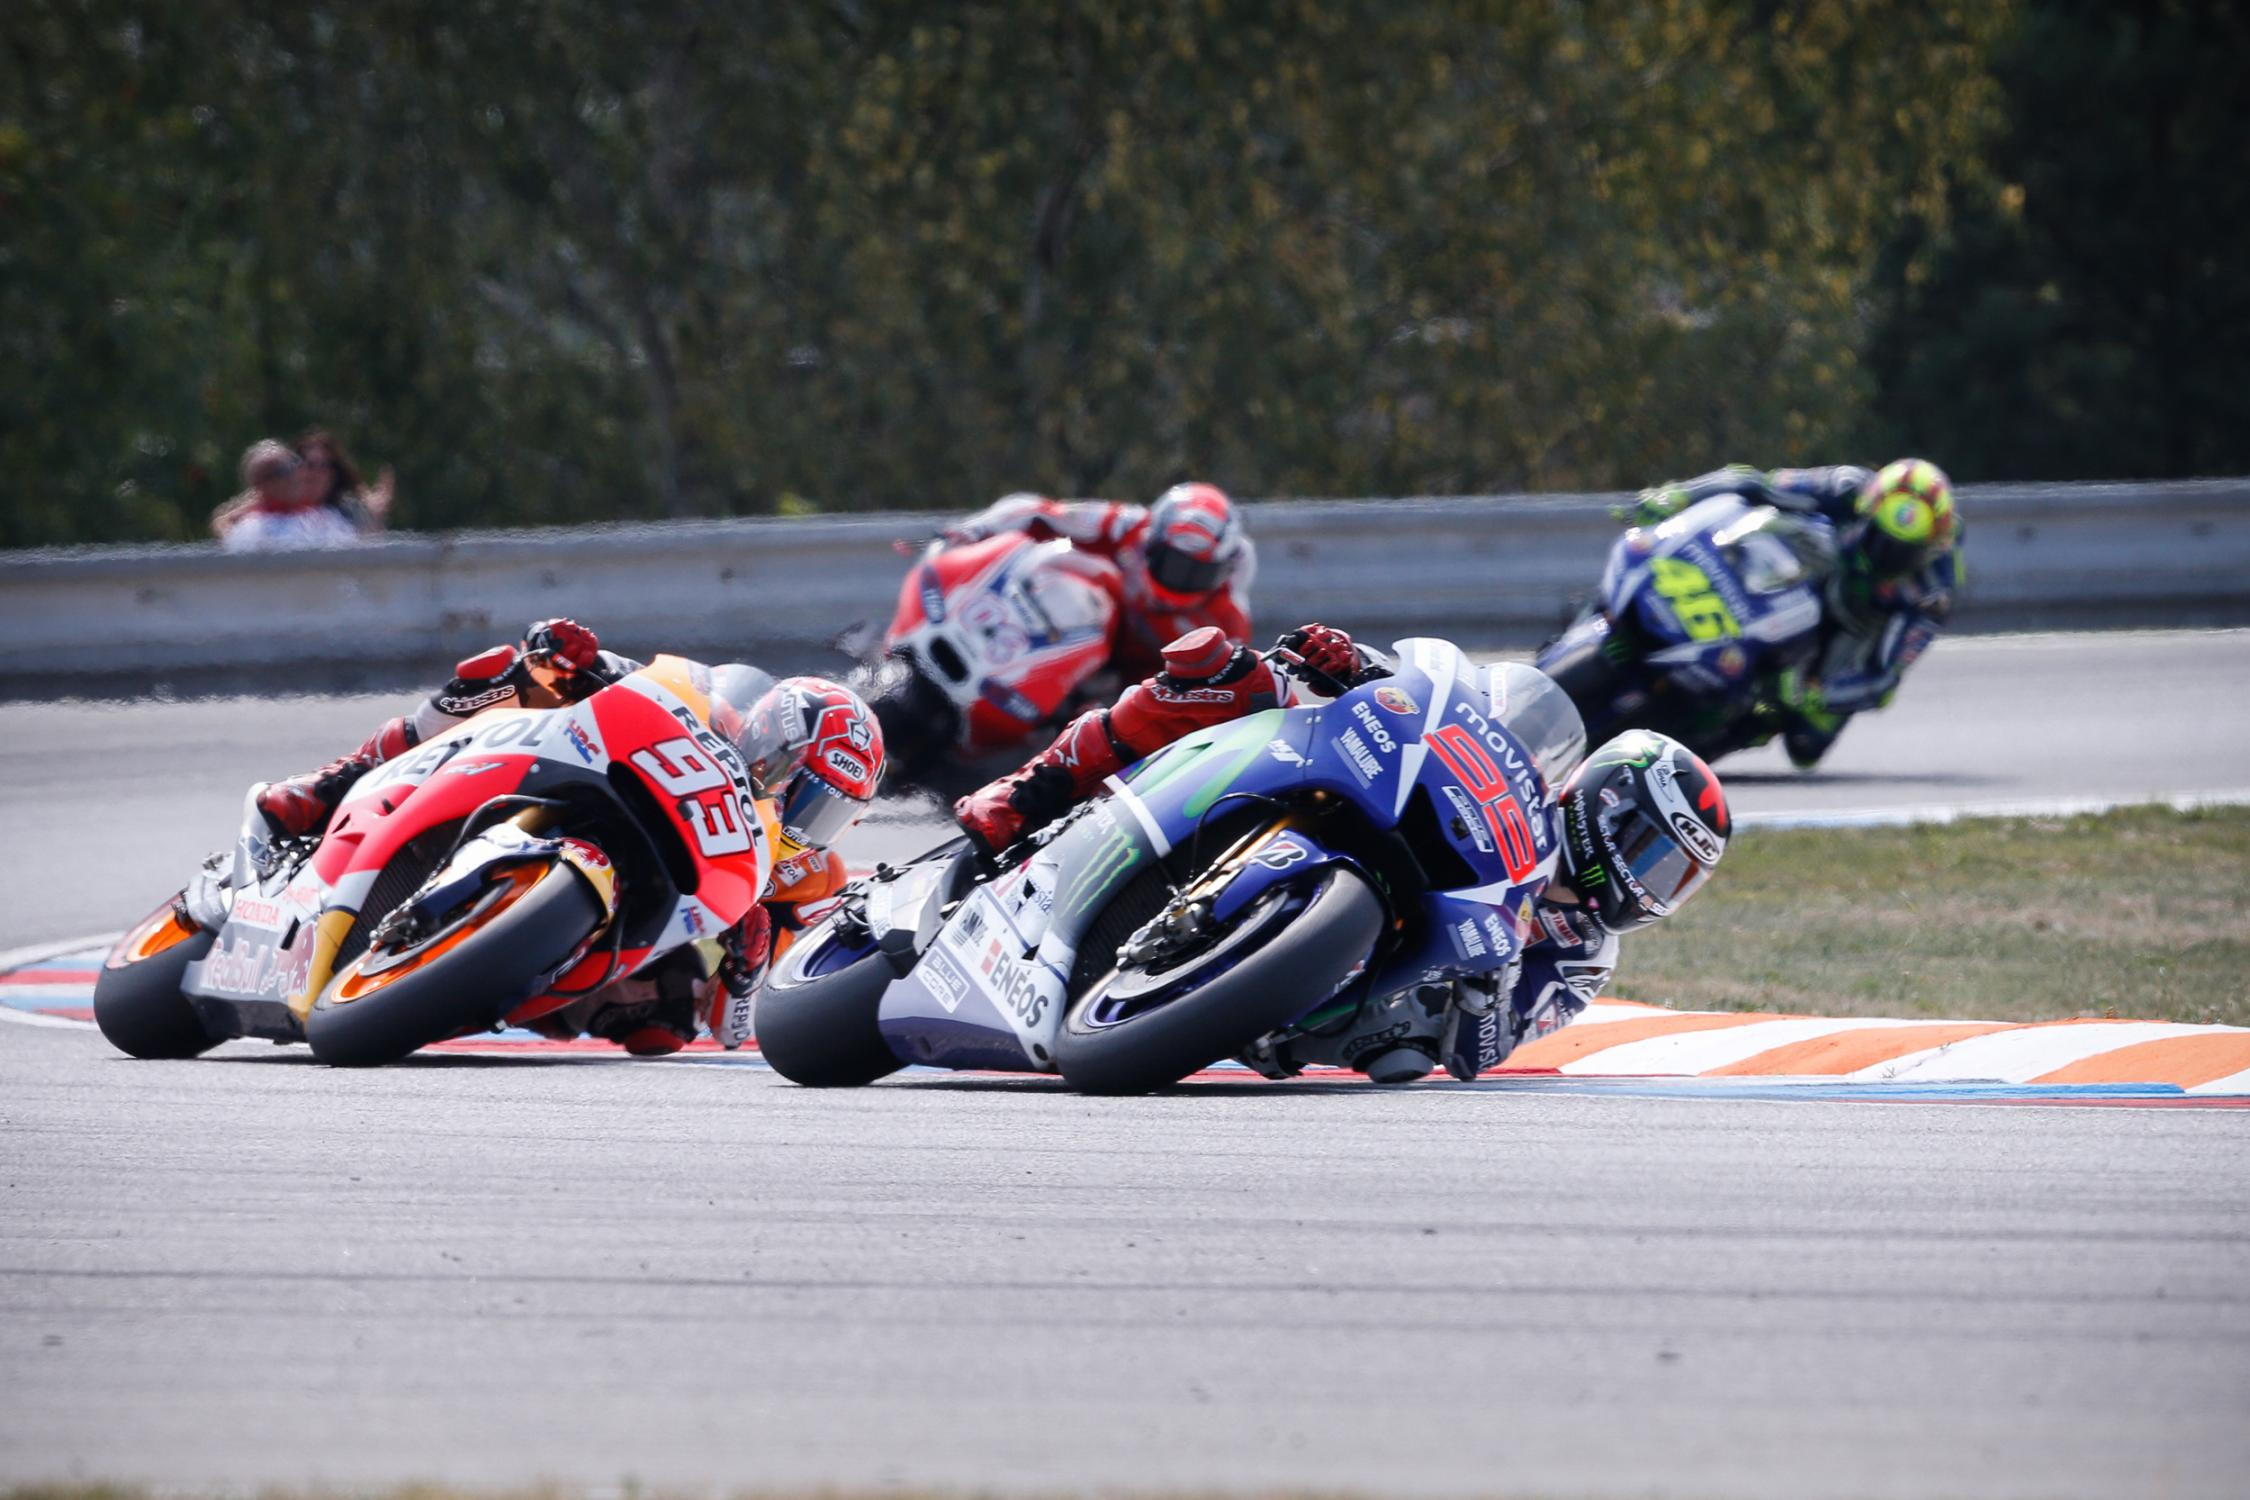 Circuito Brno Motogp : Lorenzo breaks brno track record to claim authoritative win